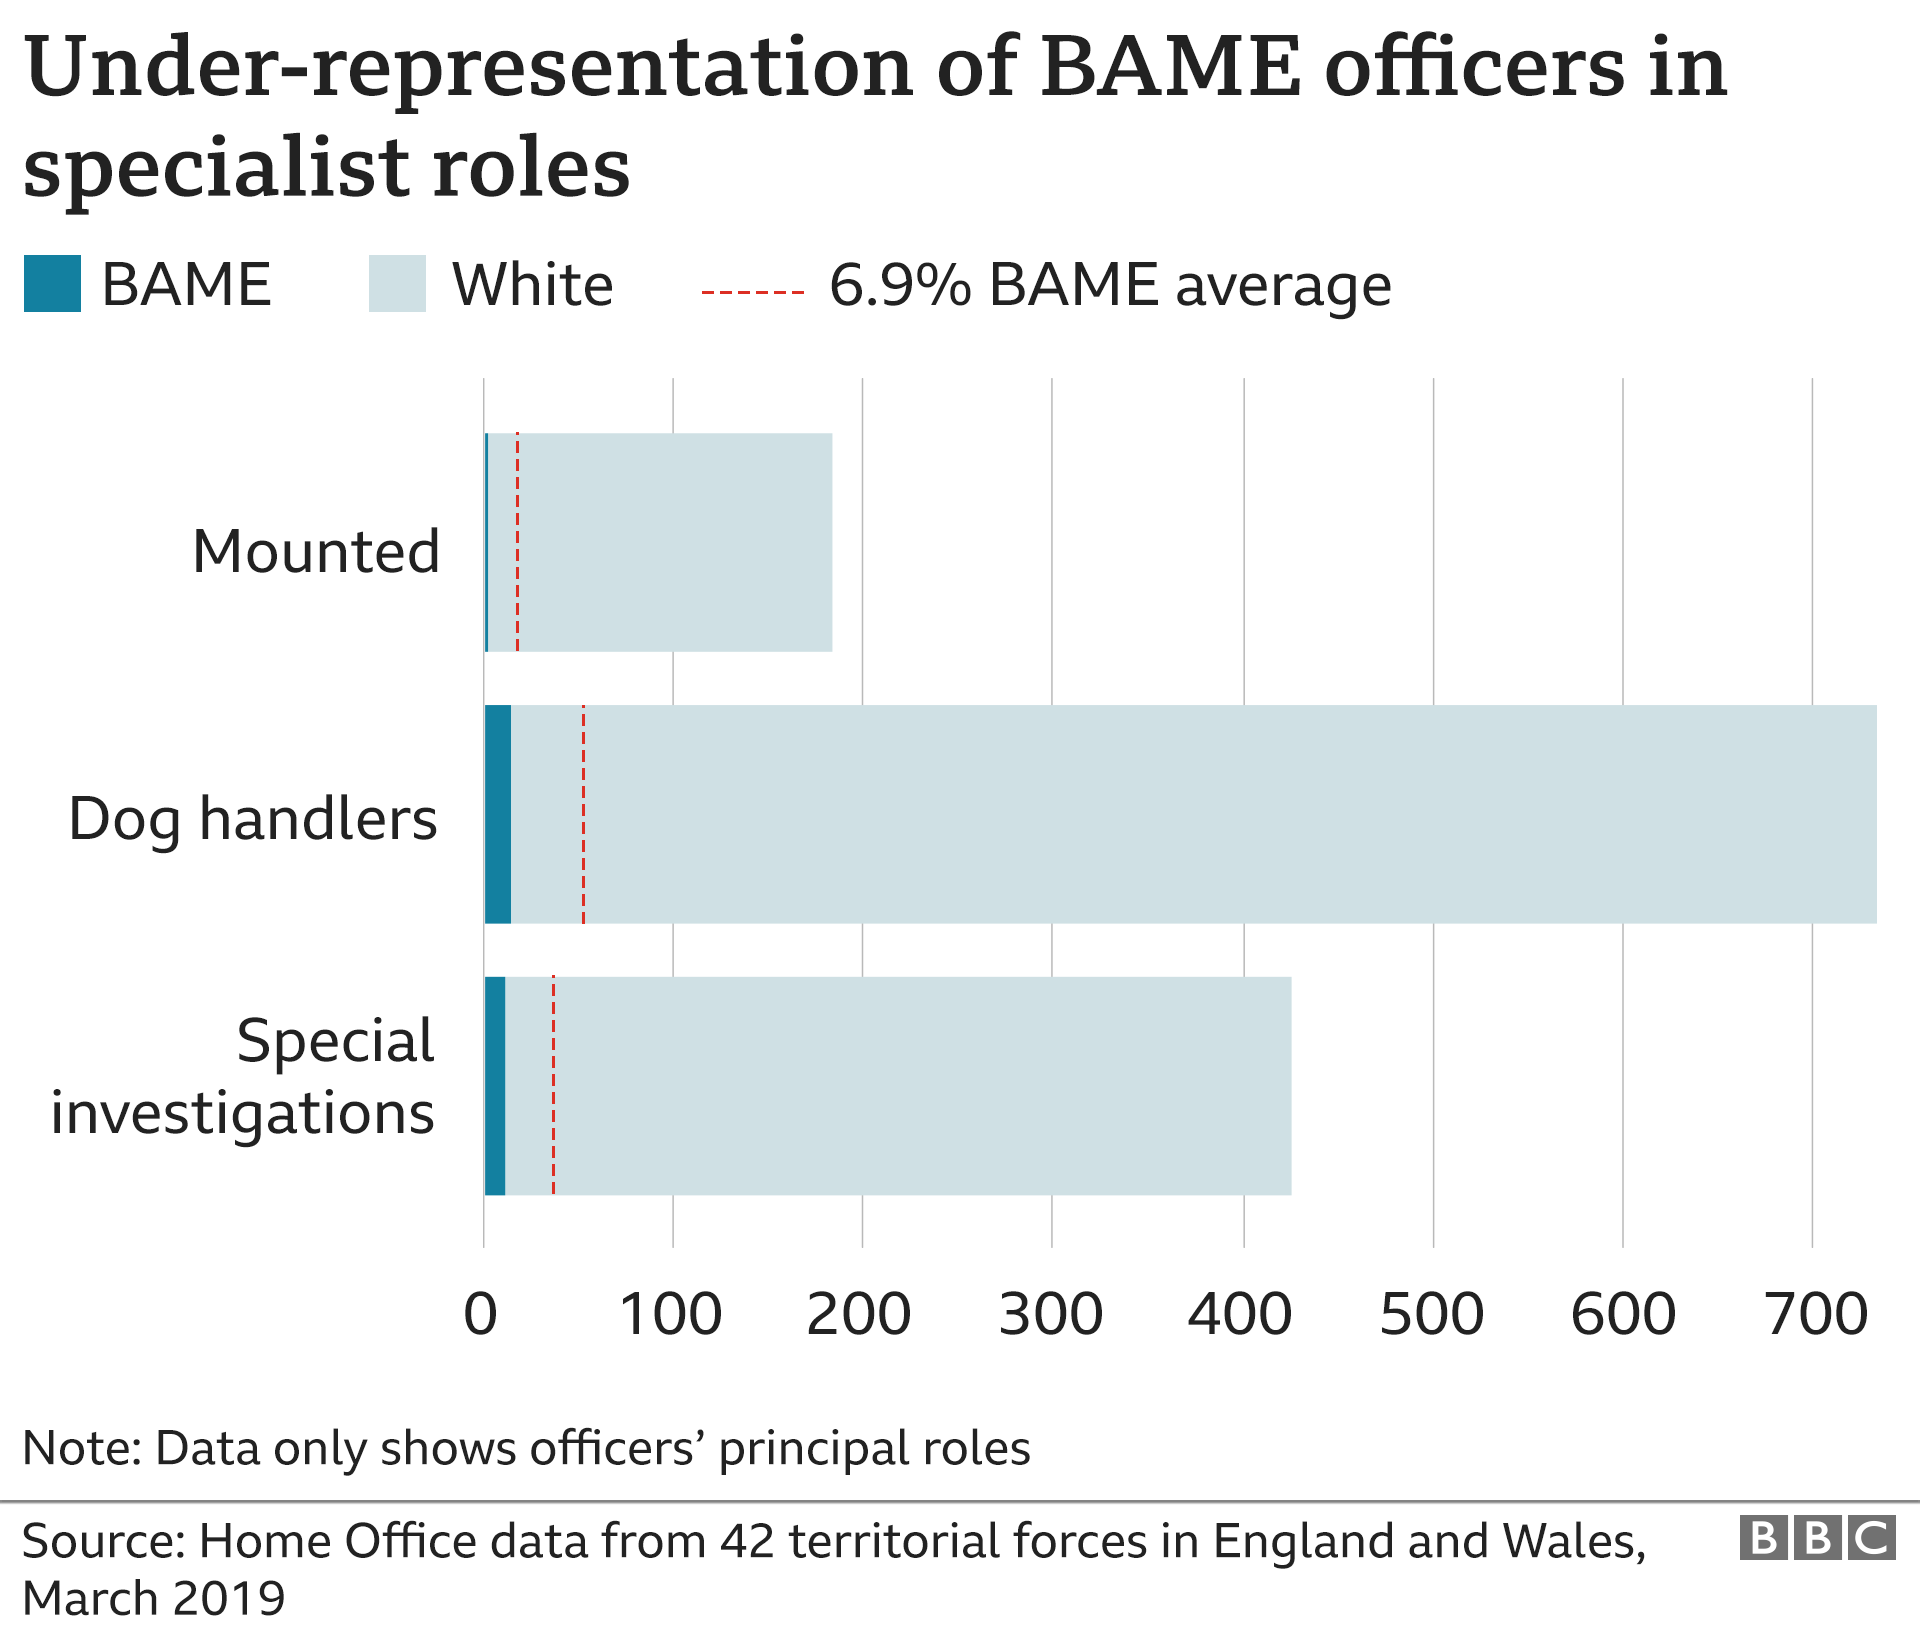 Graphic showing under-representation of BAME officers in specialist roles